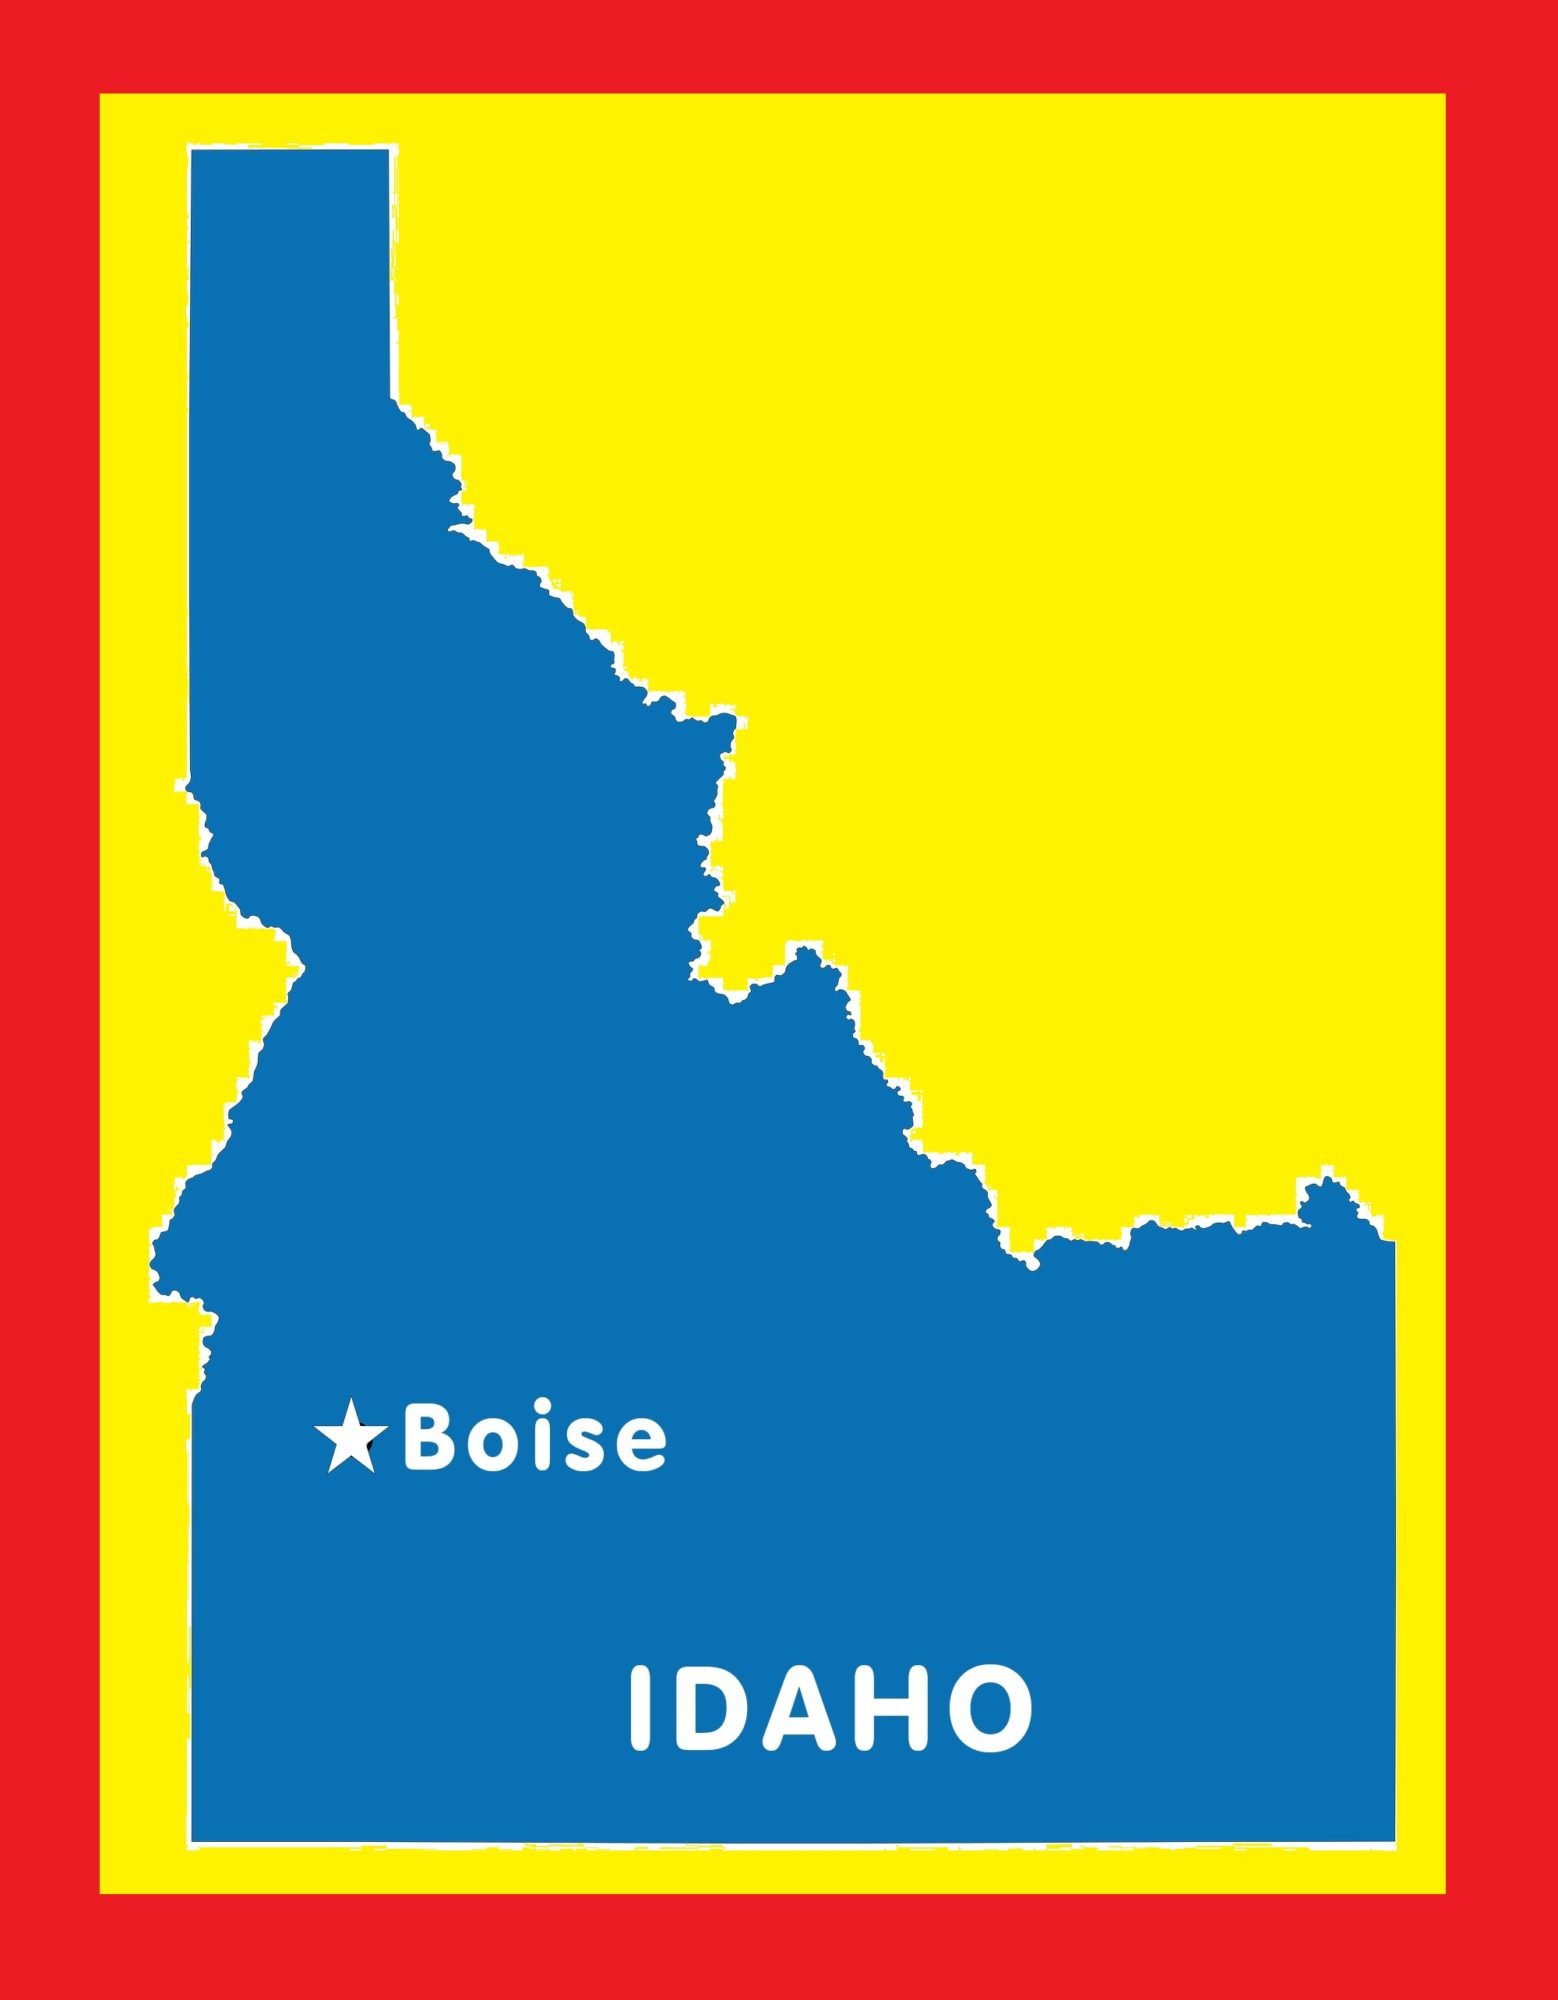 Idaho Capital Map | Large Printable and Standard Map 9